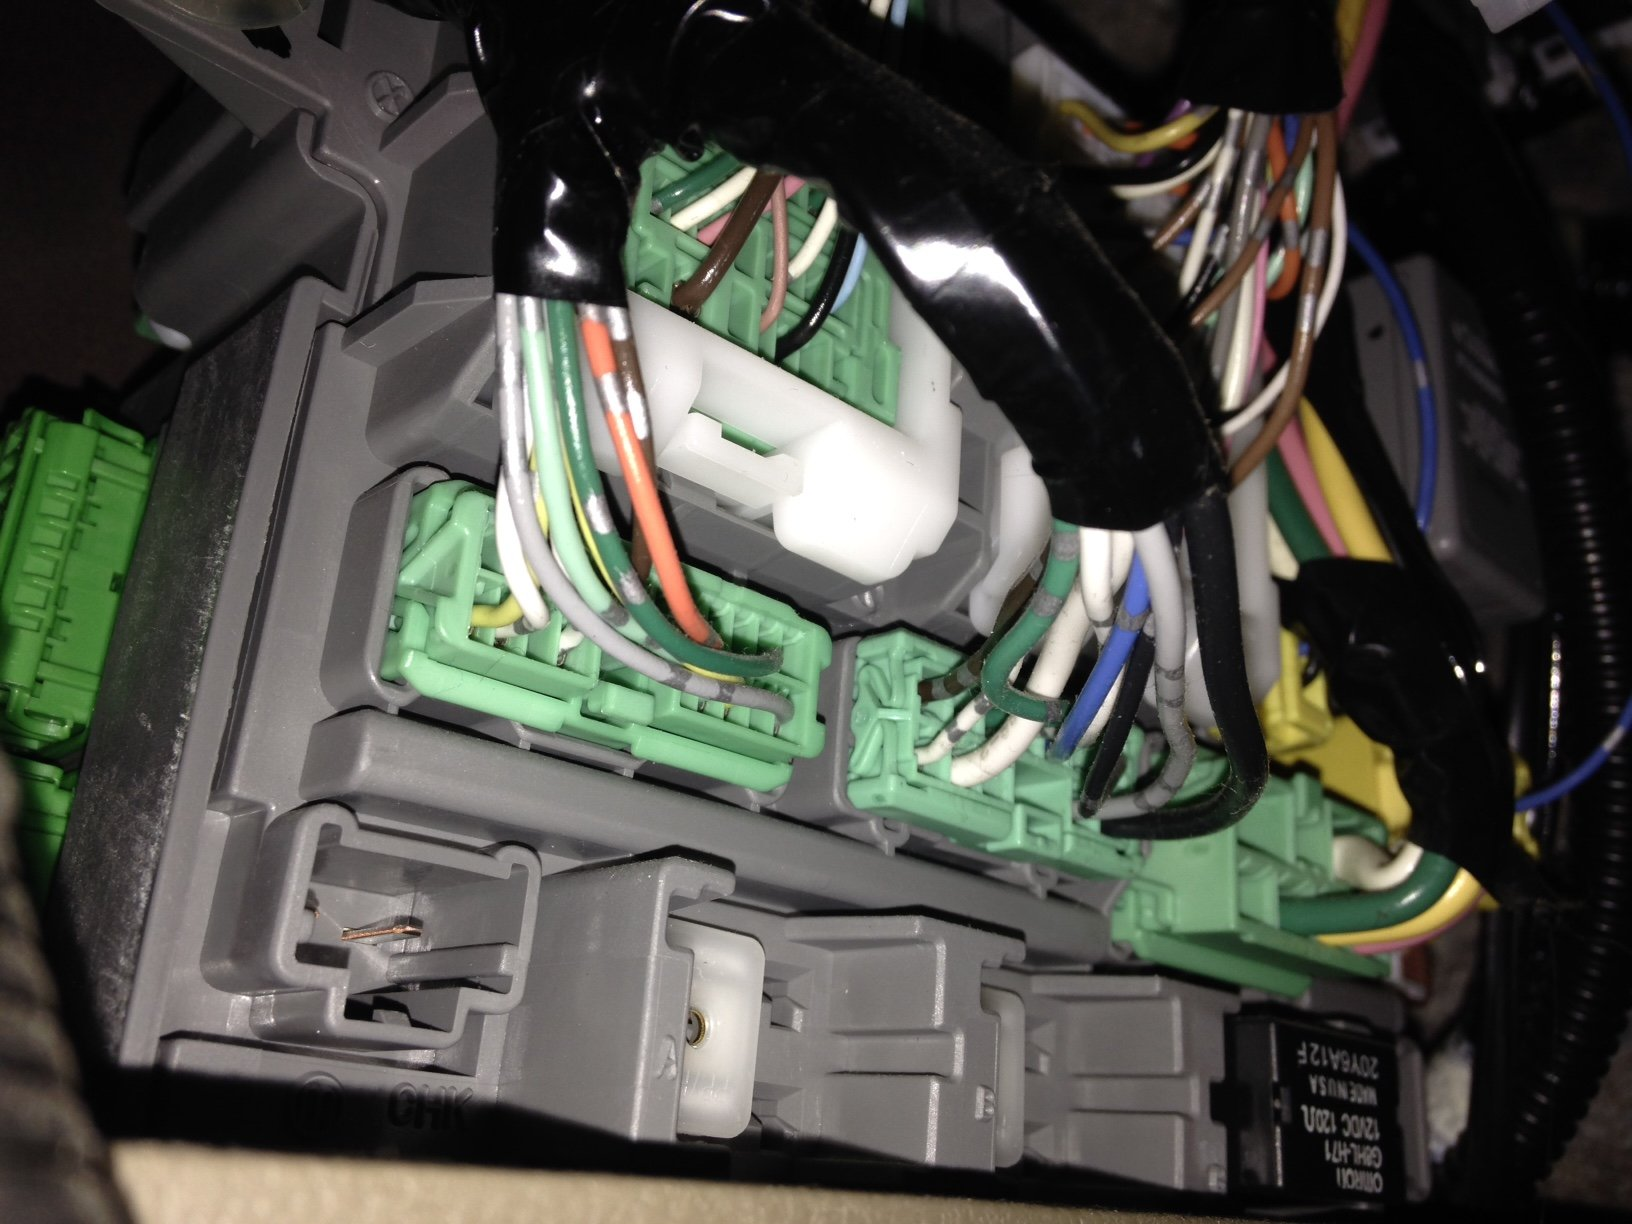 Where Is The Fuel Pump Relay Located On A 2007 Mdx Car Turns 04 Acura Fuse Box Panel